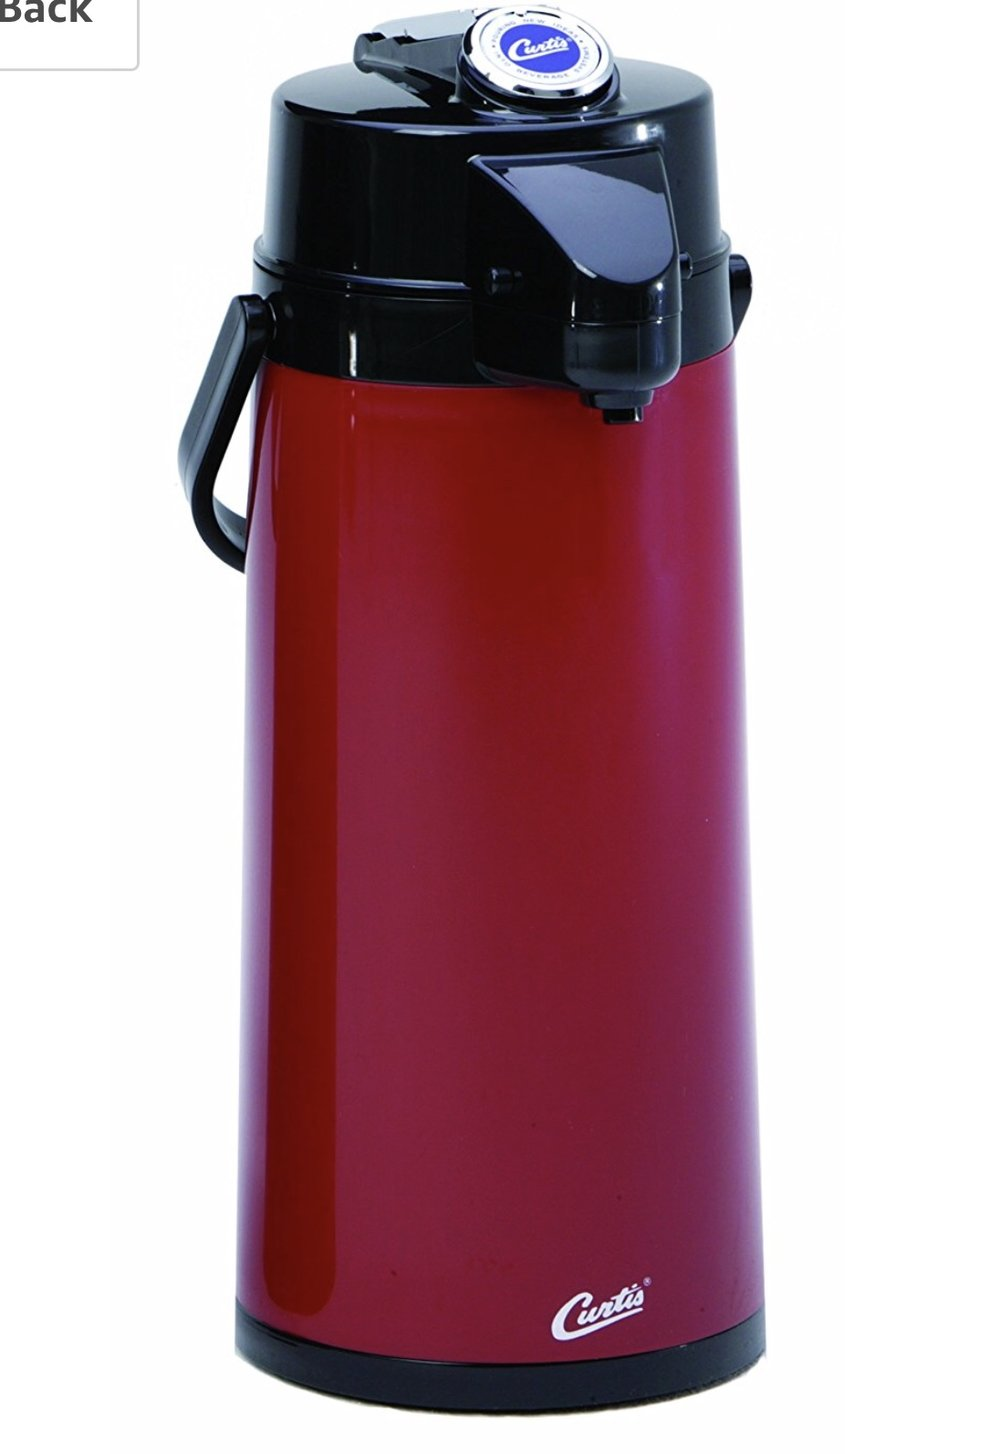 Wilbur Curtis Thermal Dispenser Airpot 2.2L Commercial Airpot, Red